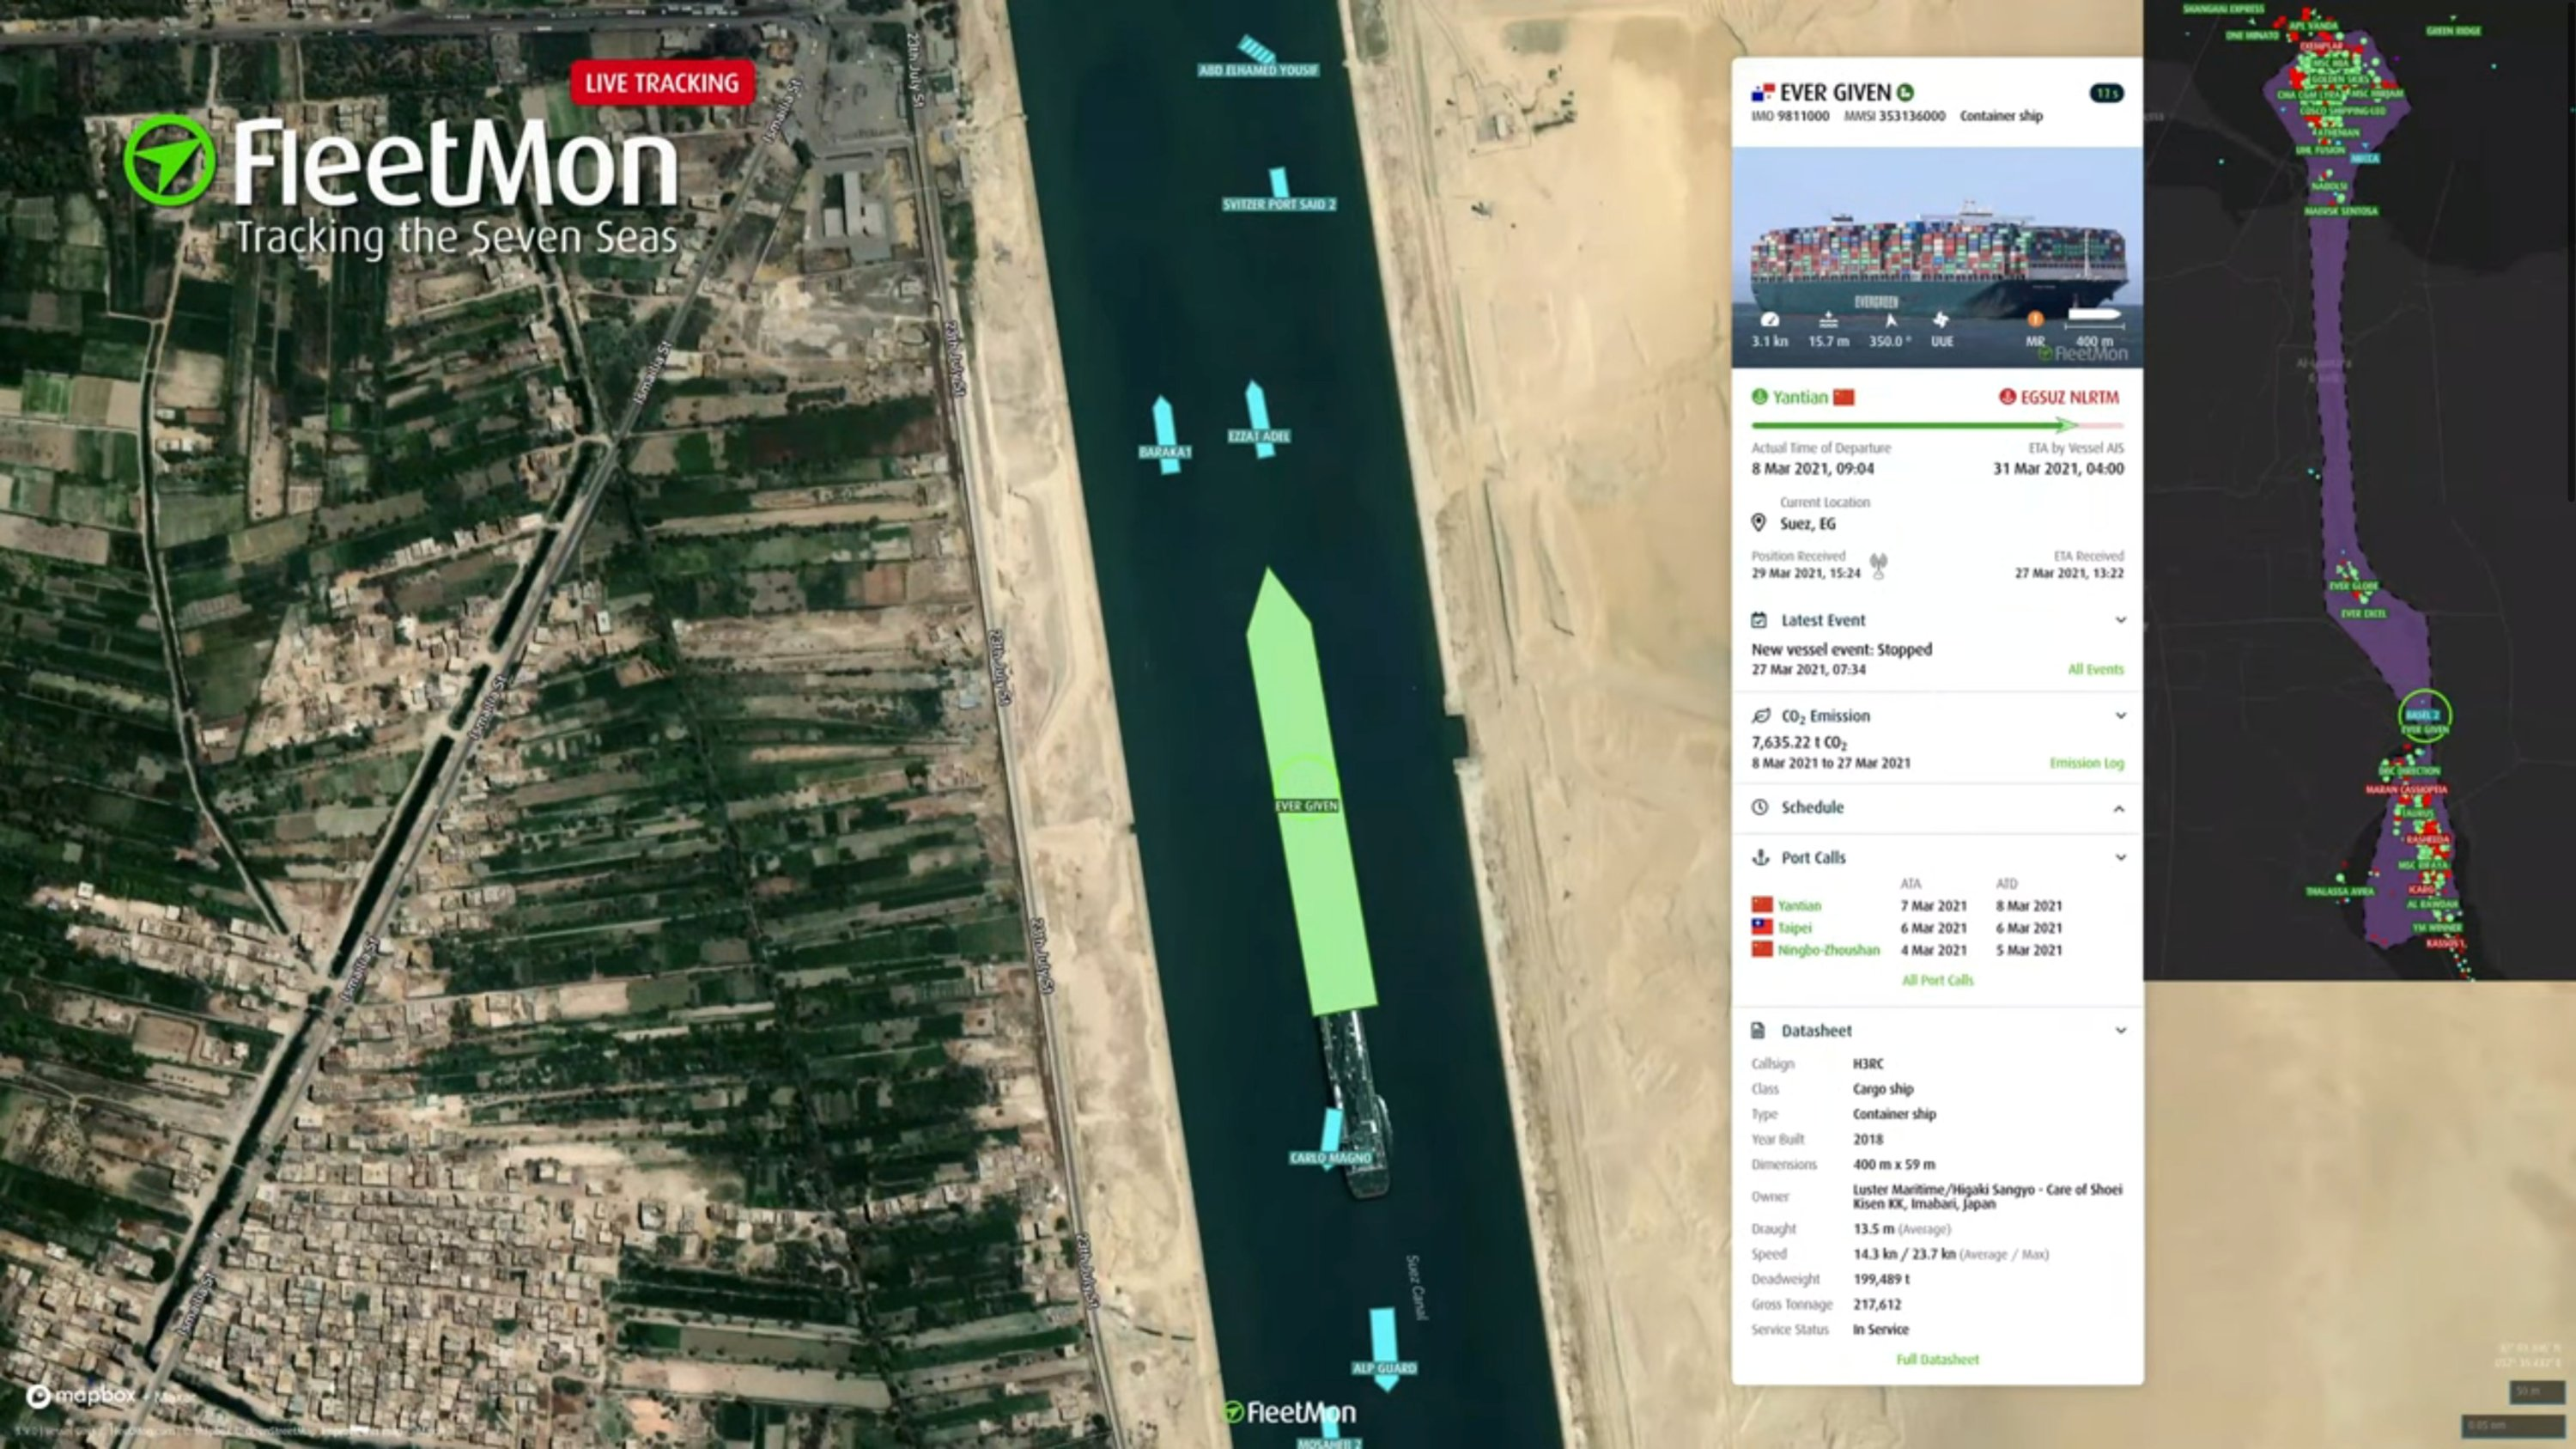 Container ship Ever Given that ran aground in the Suez Canal, Egypt, is seen in a new position in this screengrab taken from a live tracking stream, March 29, 2021. (FleetMon via Reuters)